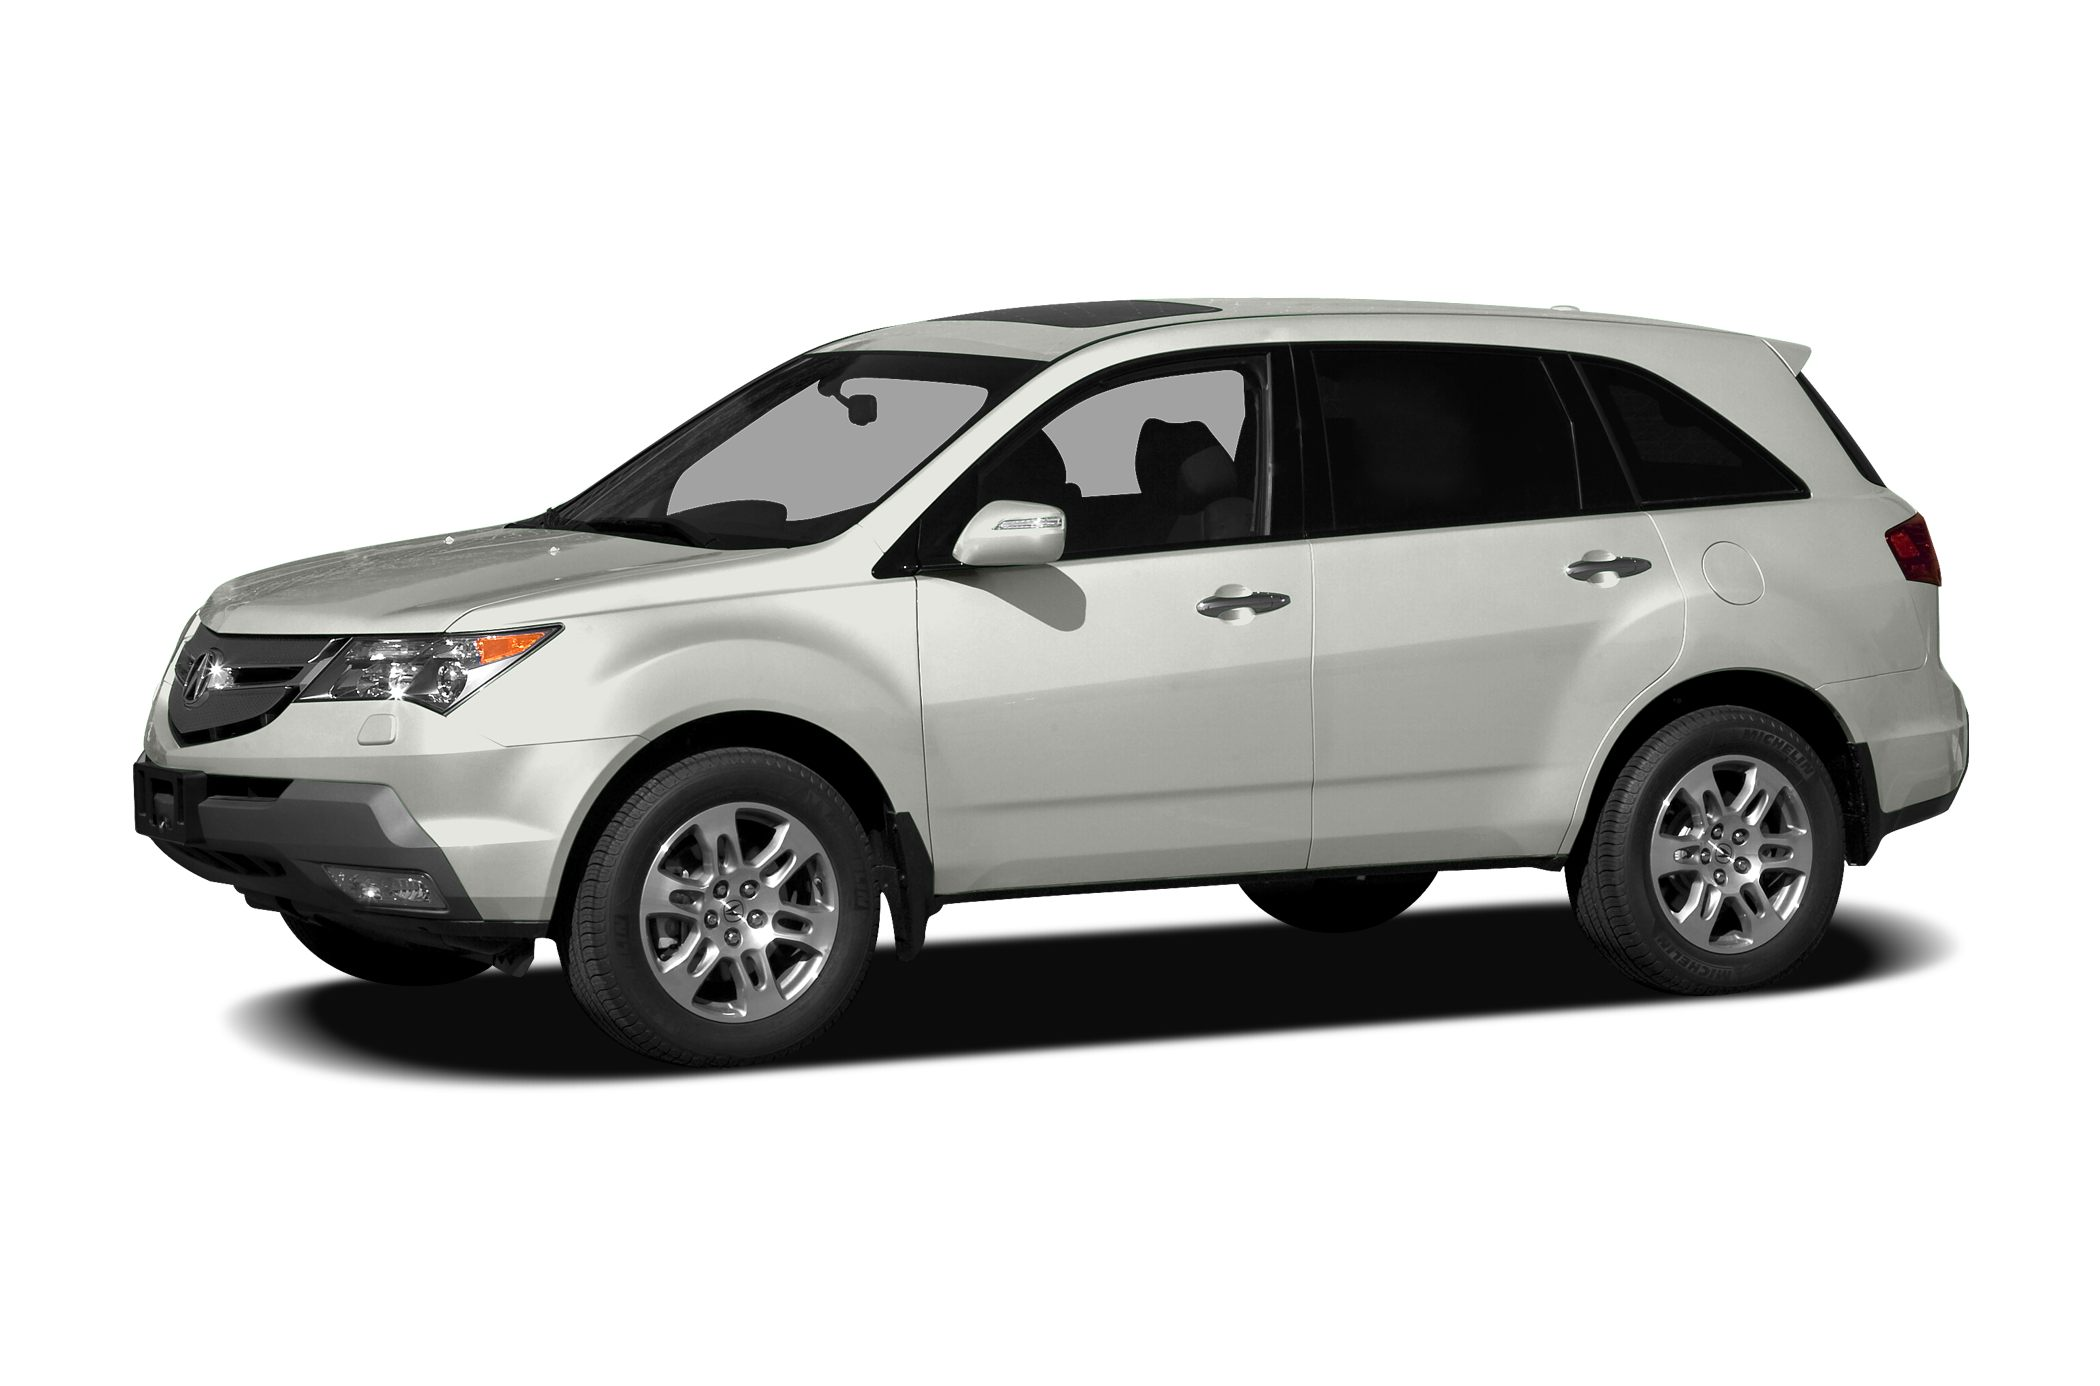 2008 Acura MDX Technology SUV for sale in Baxley for $21,596 with 94,171 miles